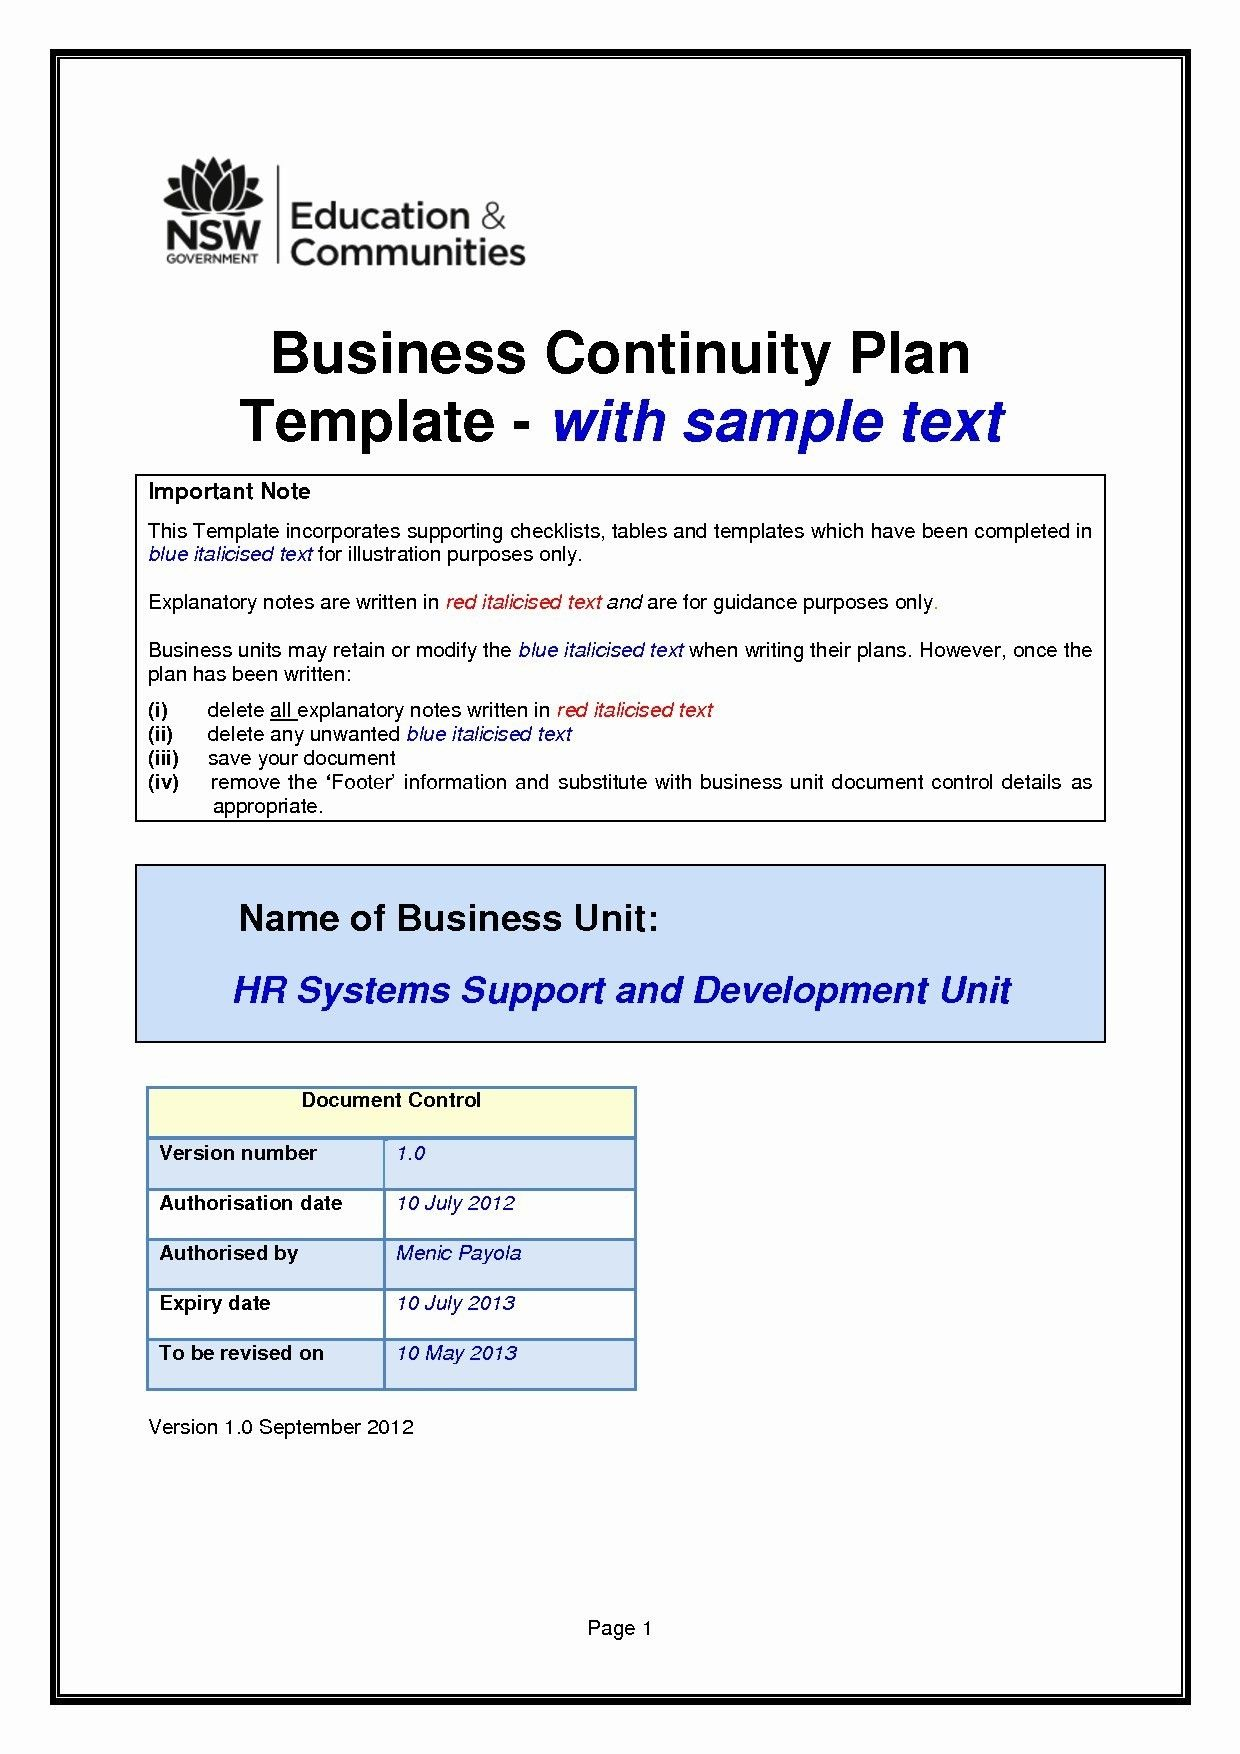 New Business Continuity Plan Template for Banks